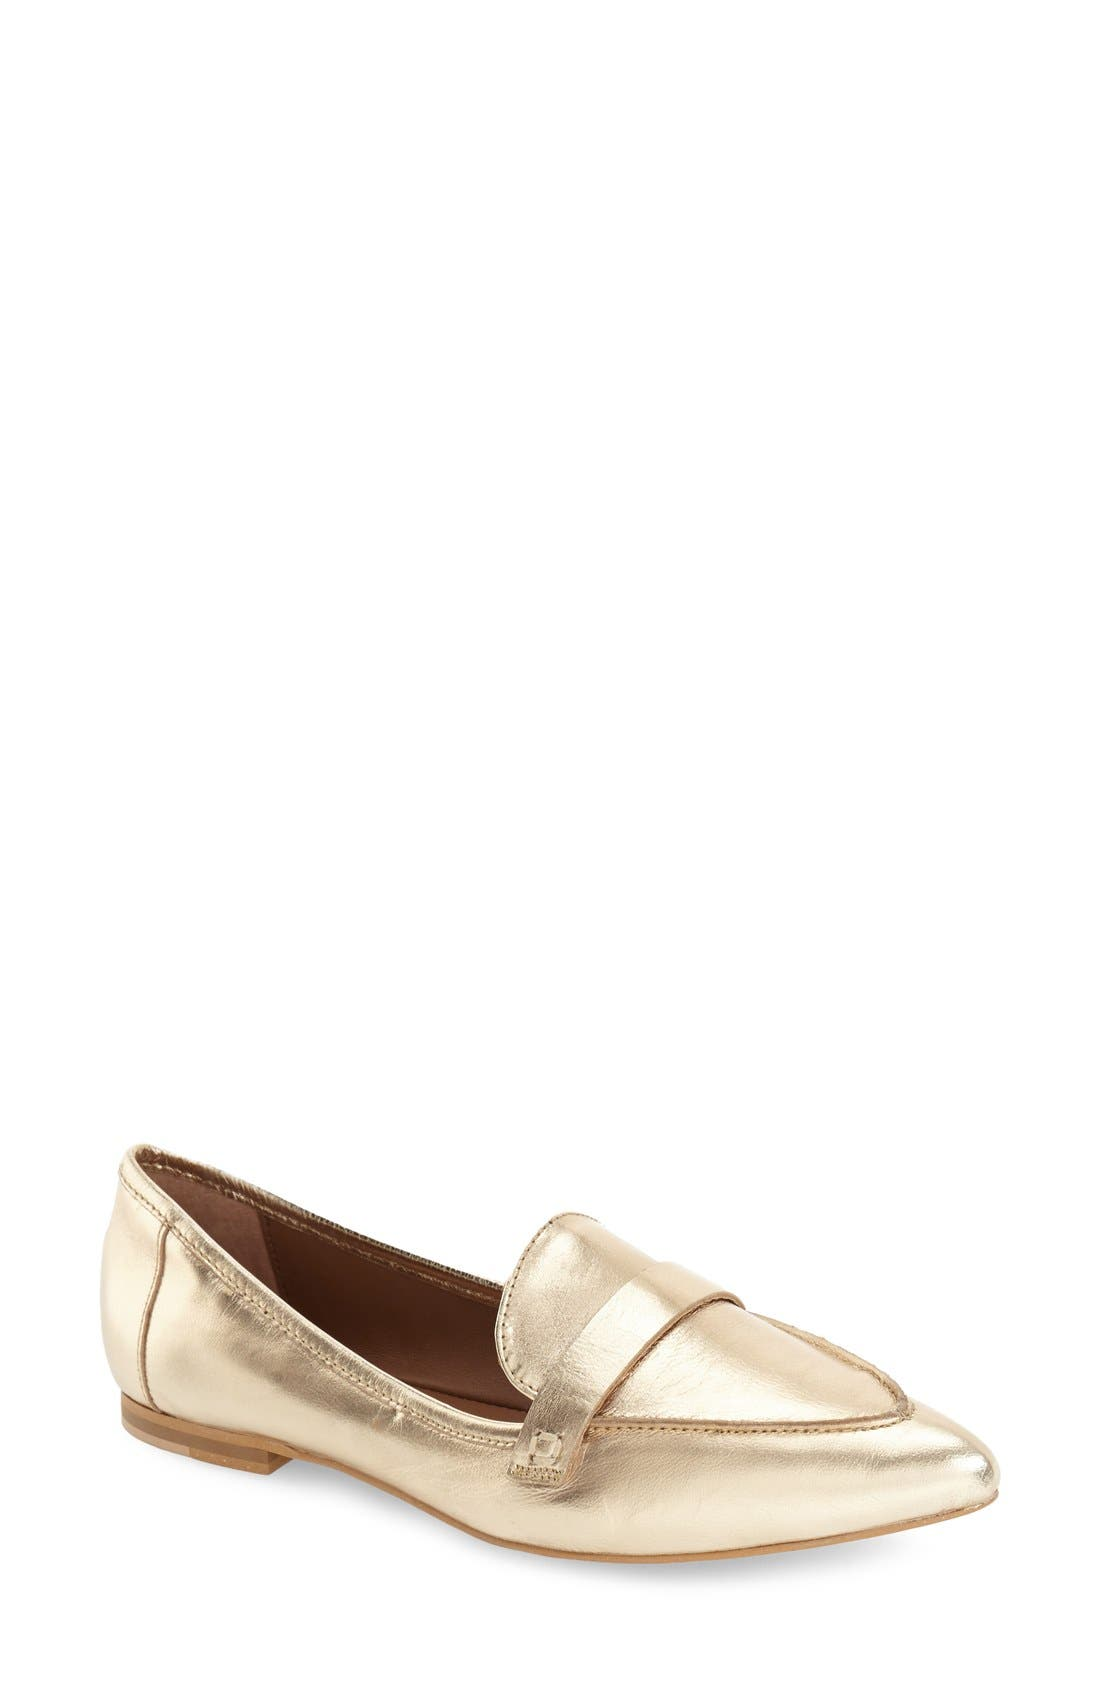 Main Image - Topshop Kimi Loafer (Women)